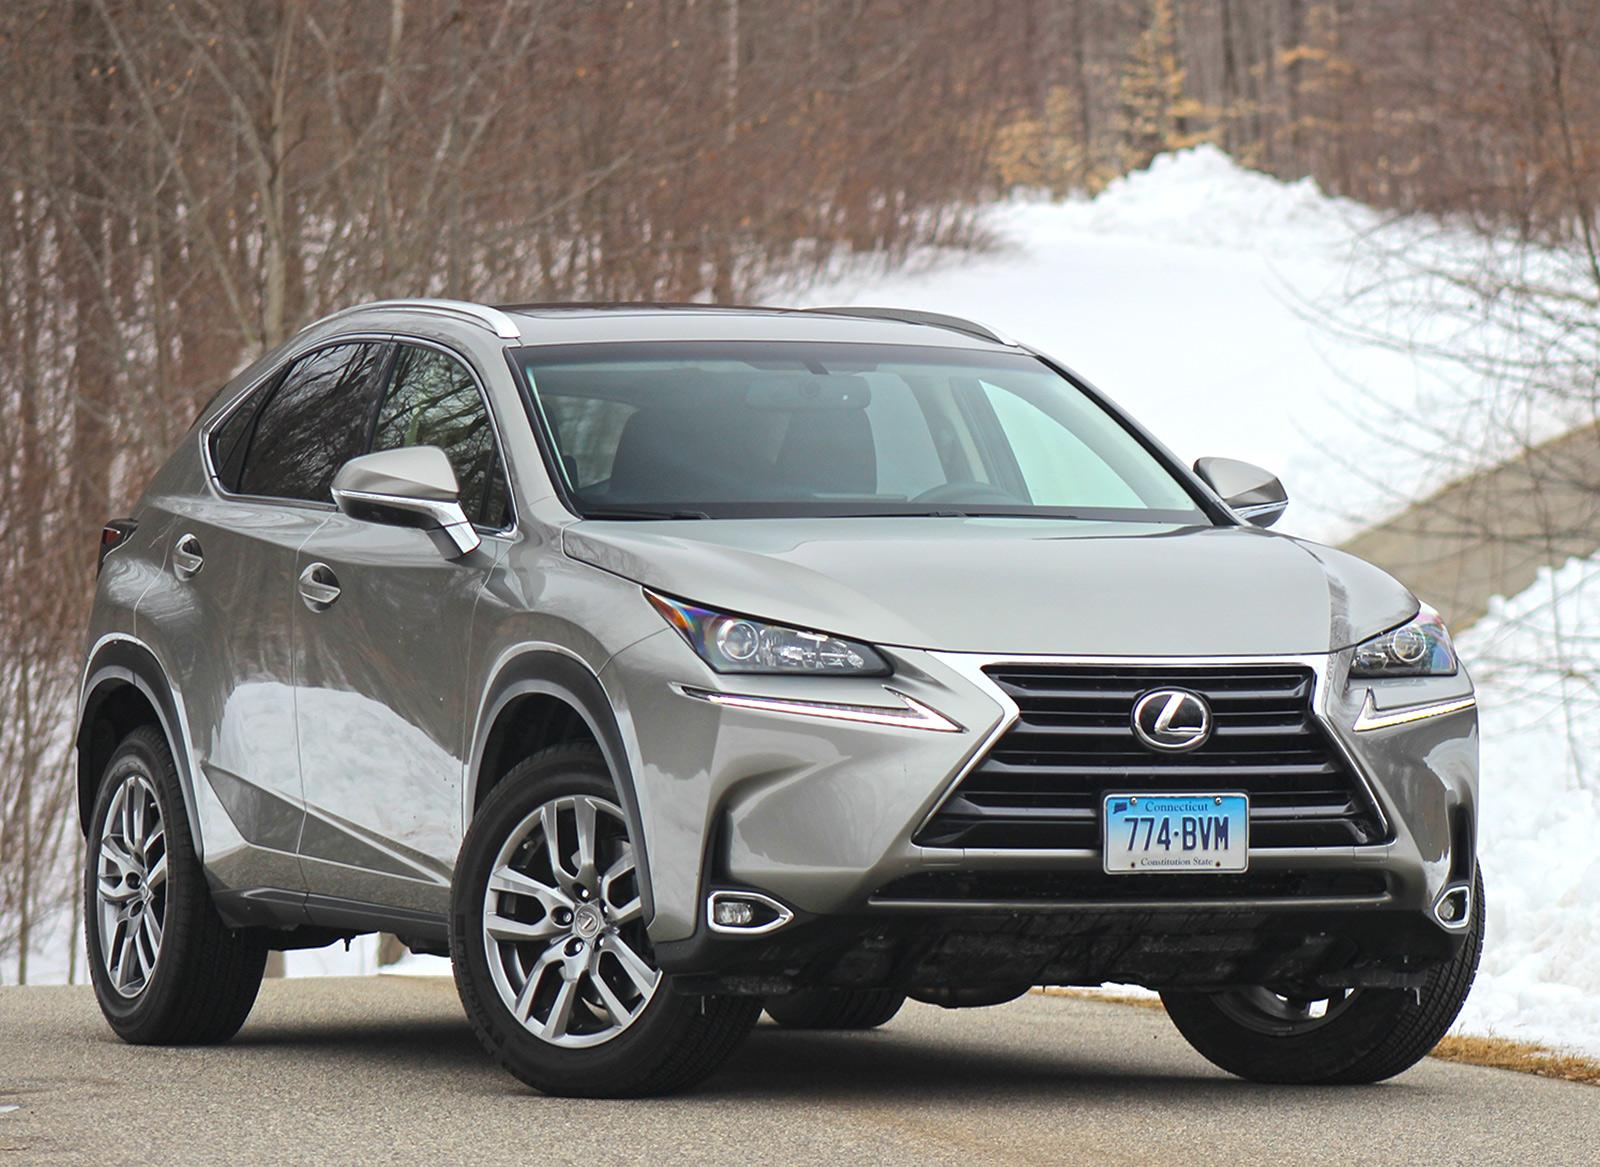 Edgy 2015 Lexus NX 200t proves agile and downright youthful